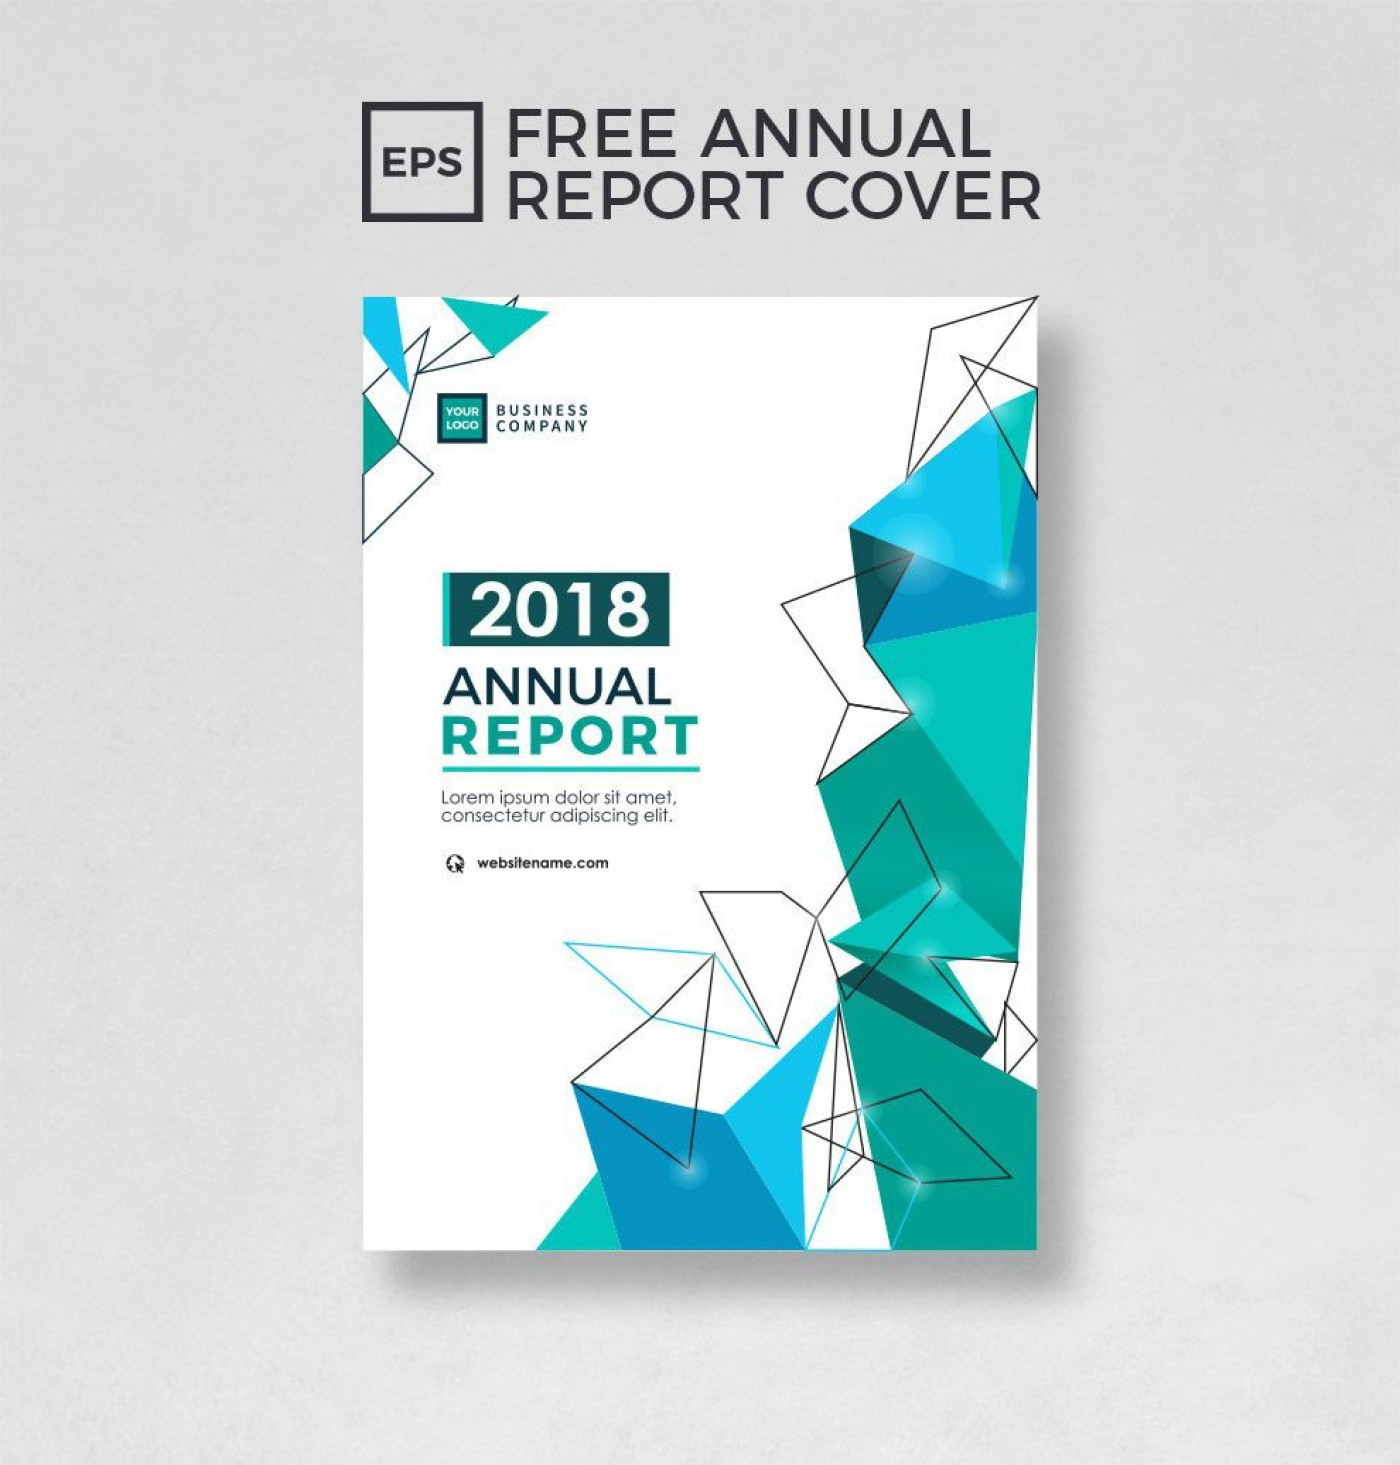 000 Exceptional Free Download Annual Report Cover Design Template High Definition  Page In Word1400